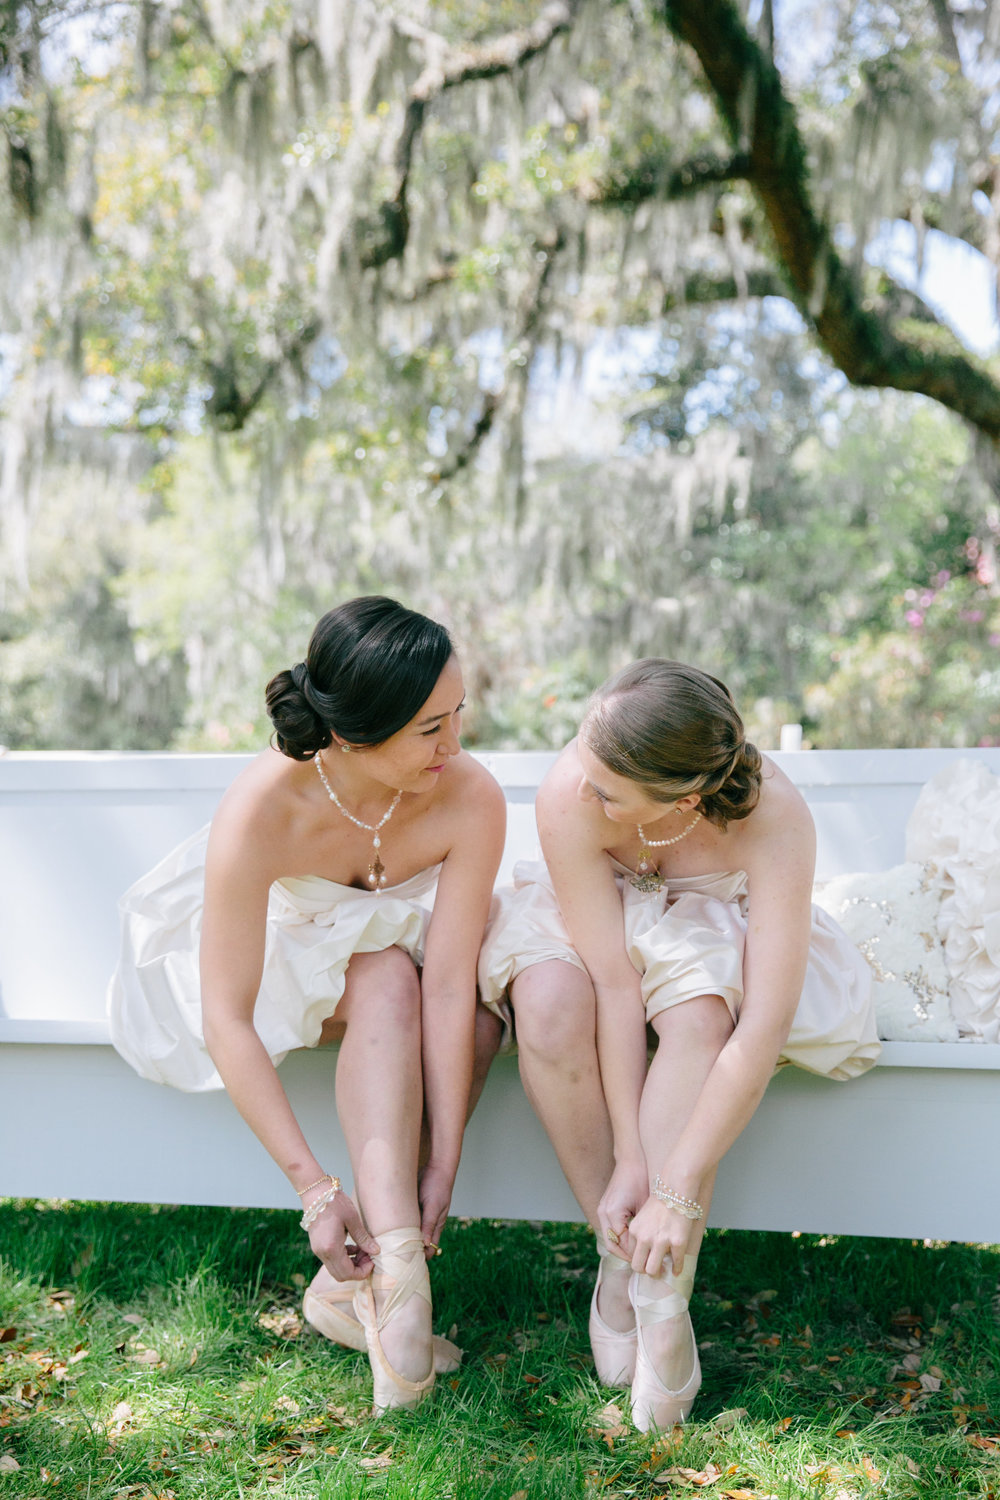 View More: http://danacubbageweddings.pass.us/balletstyledshoot